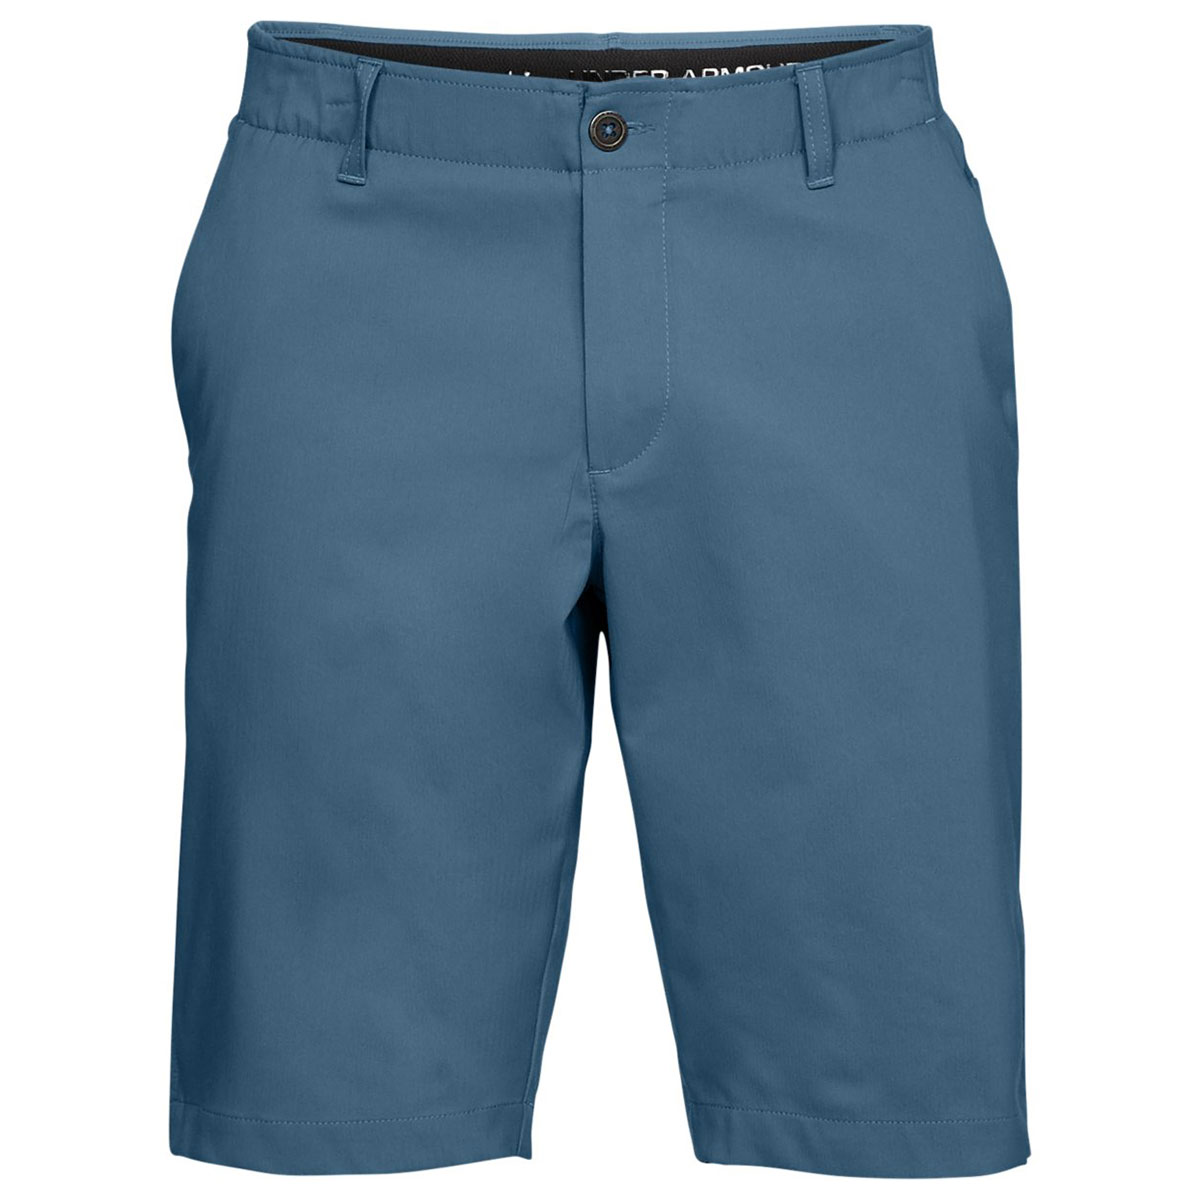 Under-Armour-Mens-Takeover-Taper-Mid-Length-Golf-Shorts-42-OFF-RRP thumbnail 11